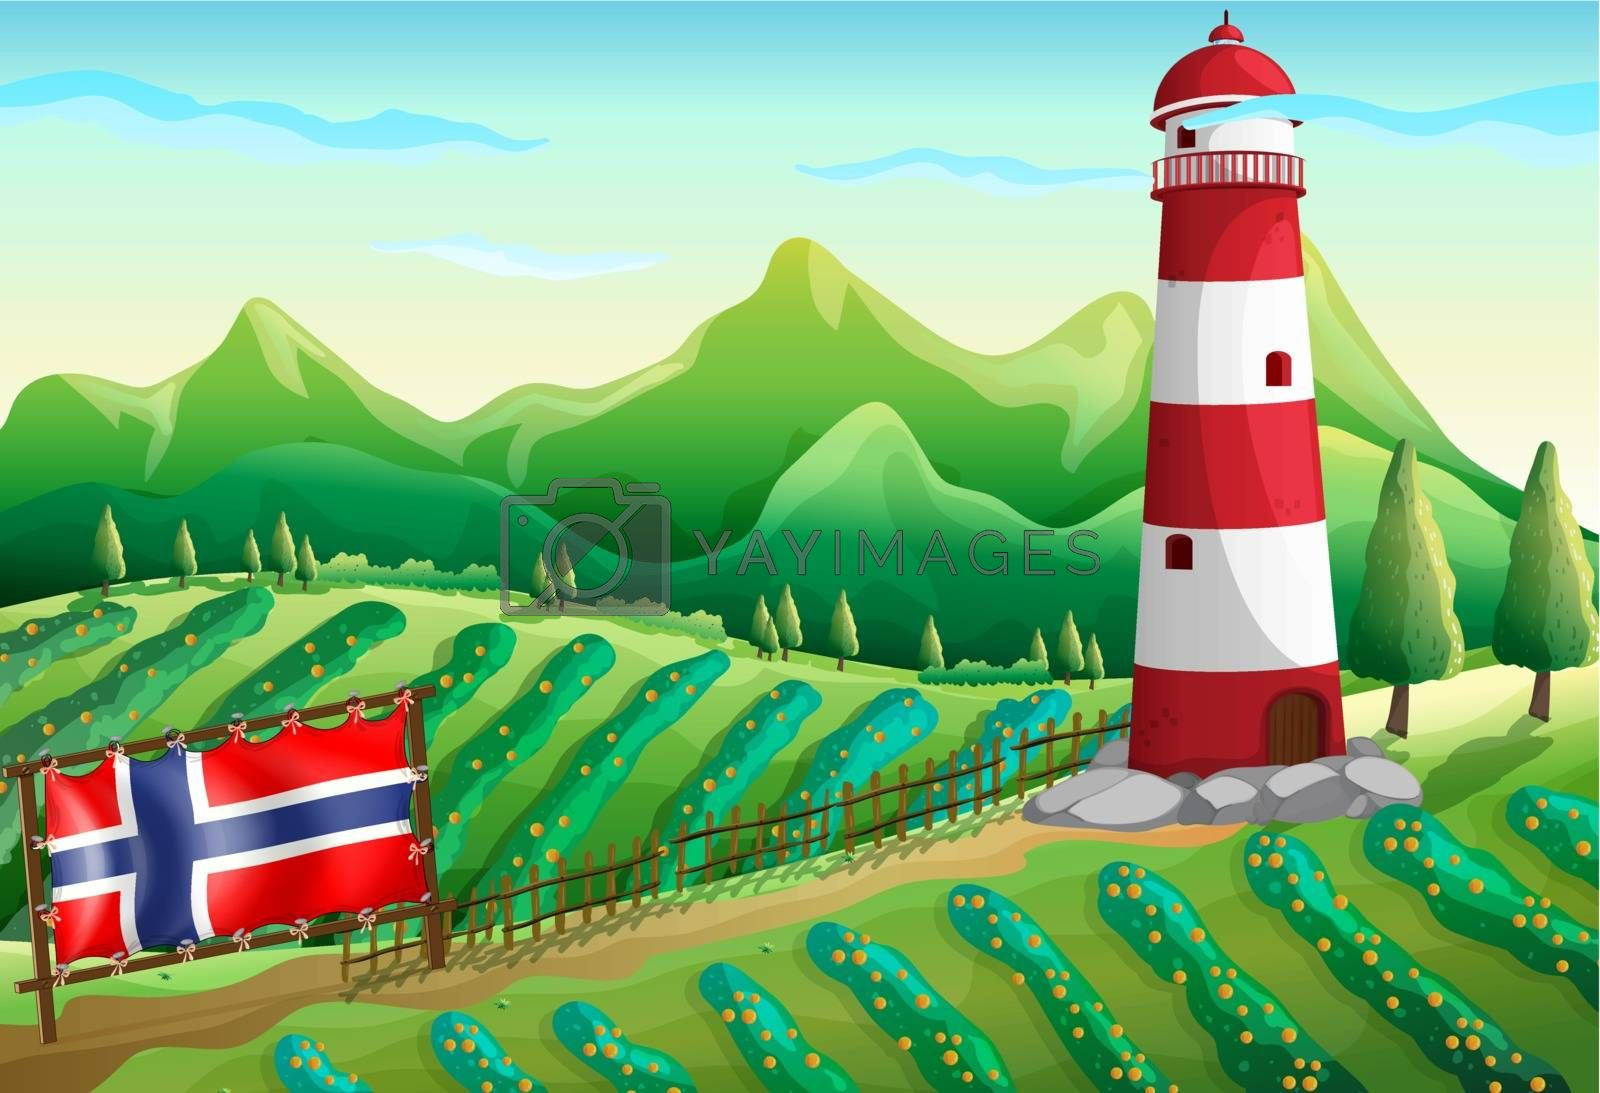 Illustration of the flag of Norway at the farm